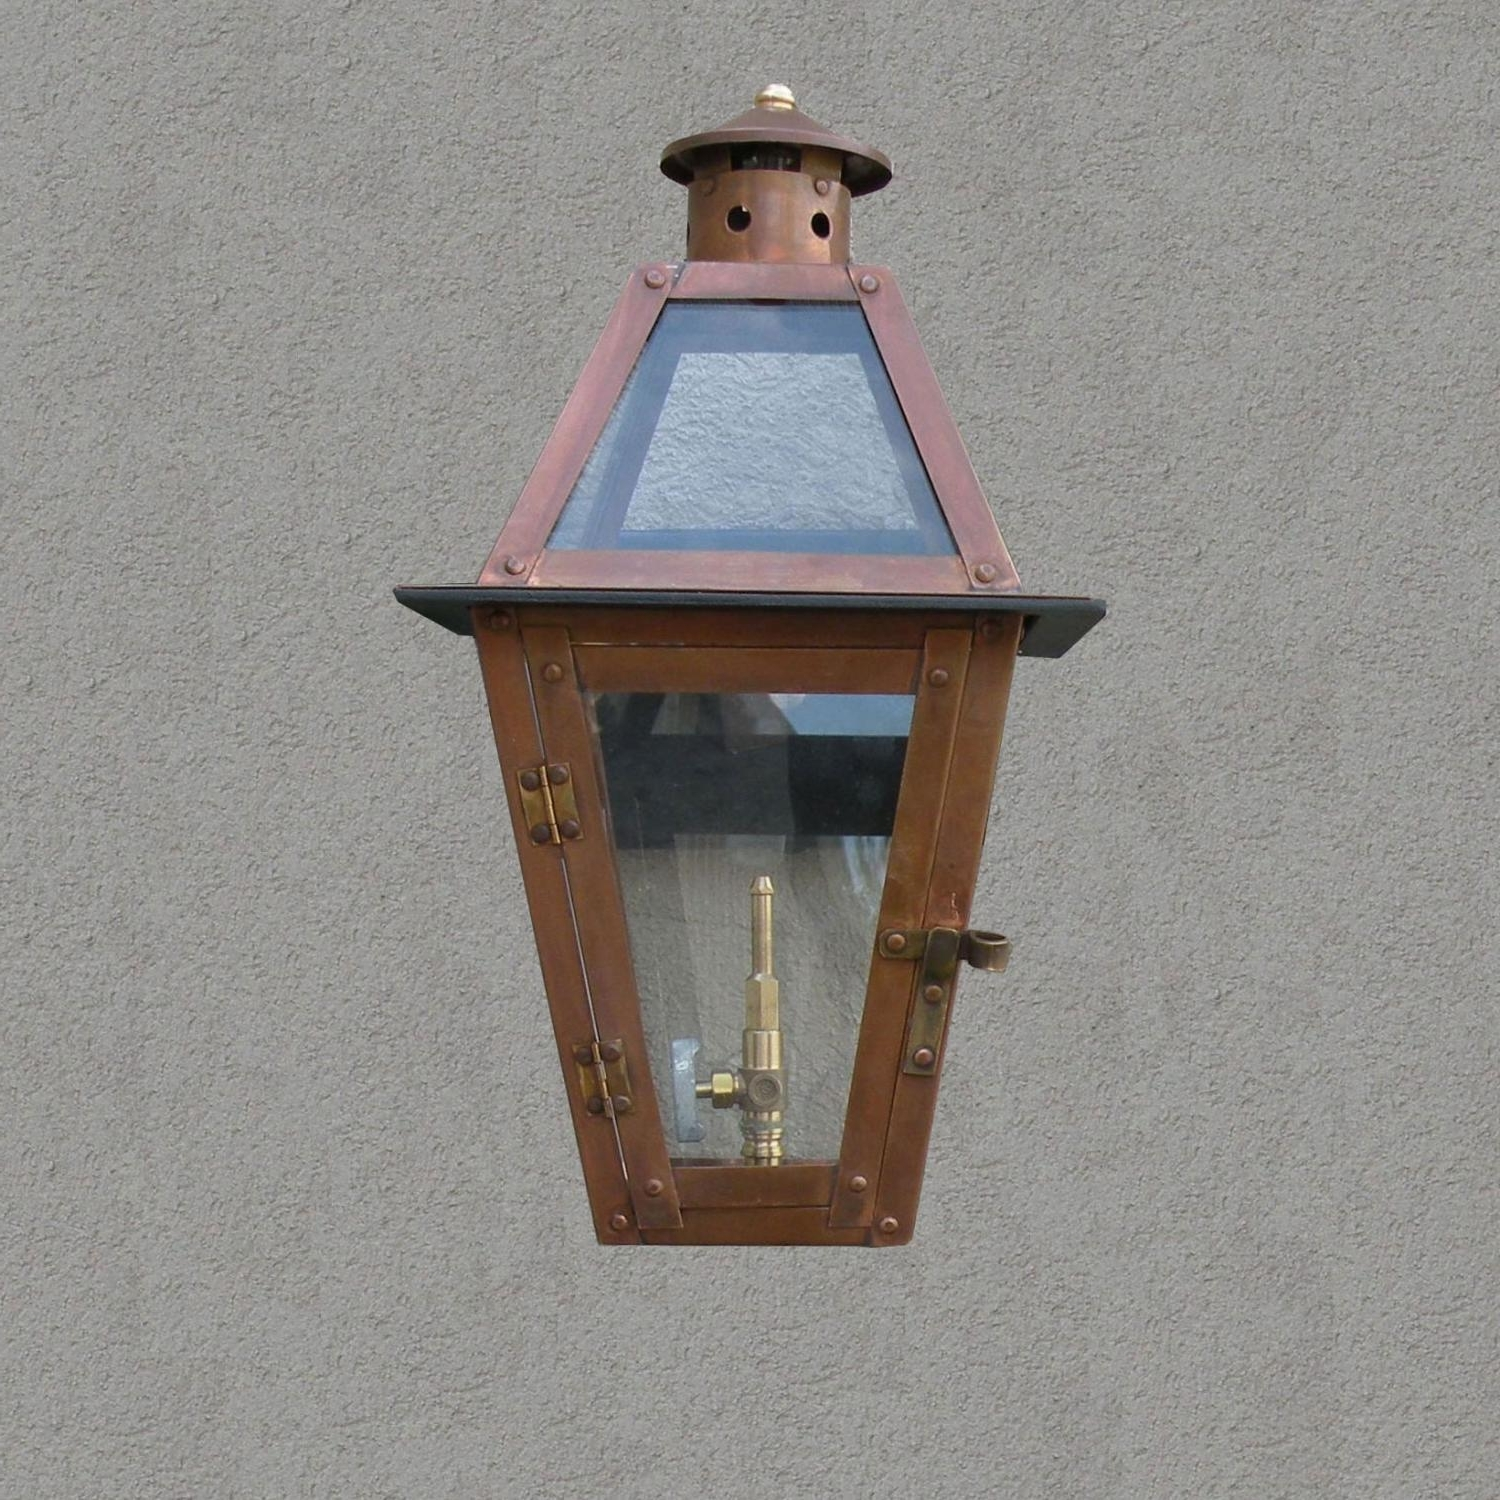 Preferred Regency Gl15 Chateau Natural Gas Light With Open Flame Burner And In Outdoor Patio Electric Lanterns (View 15 of 20)